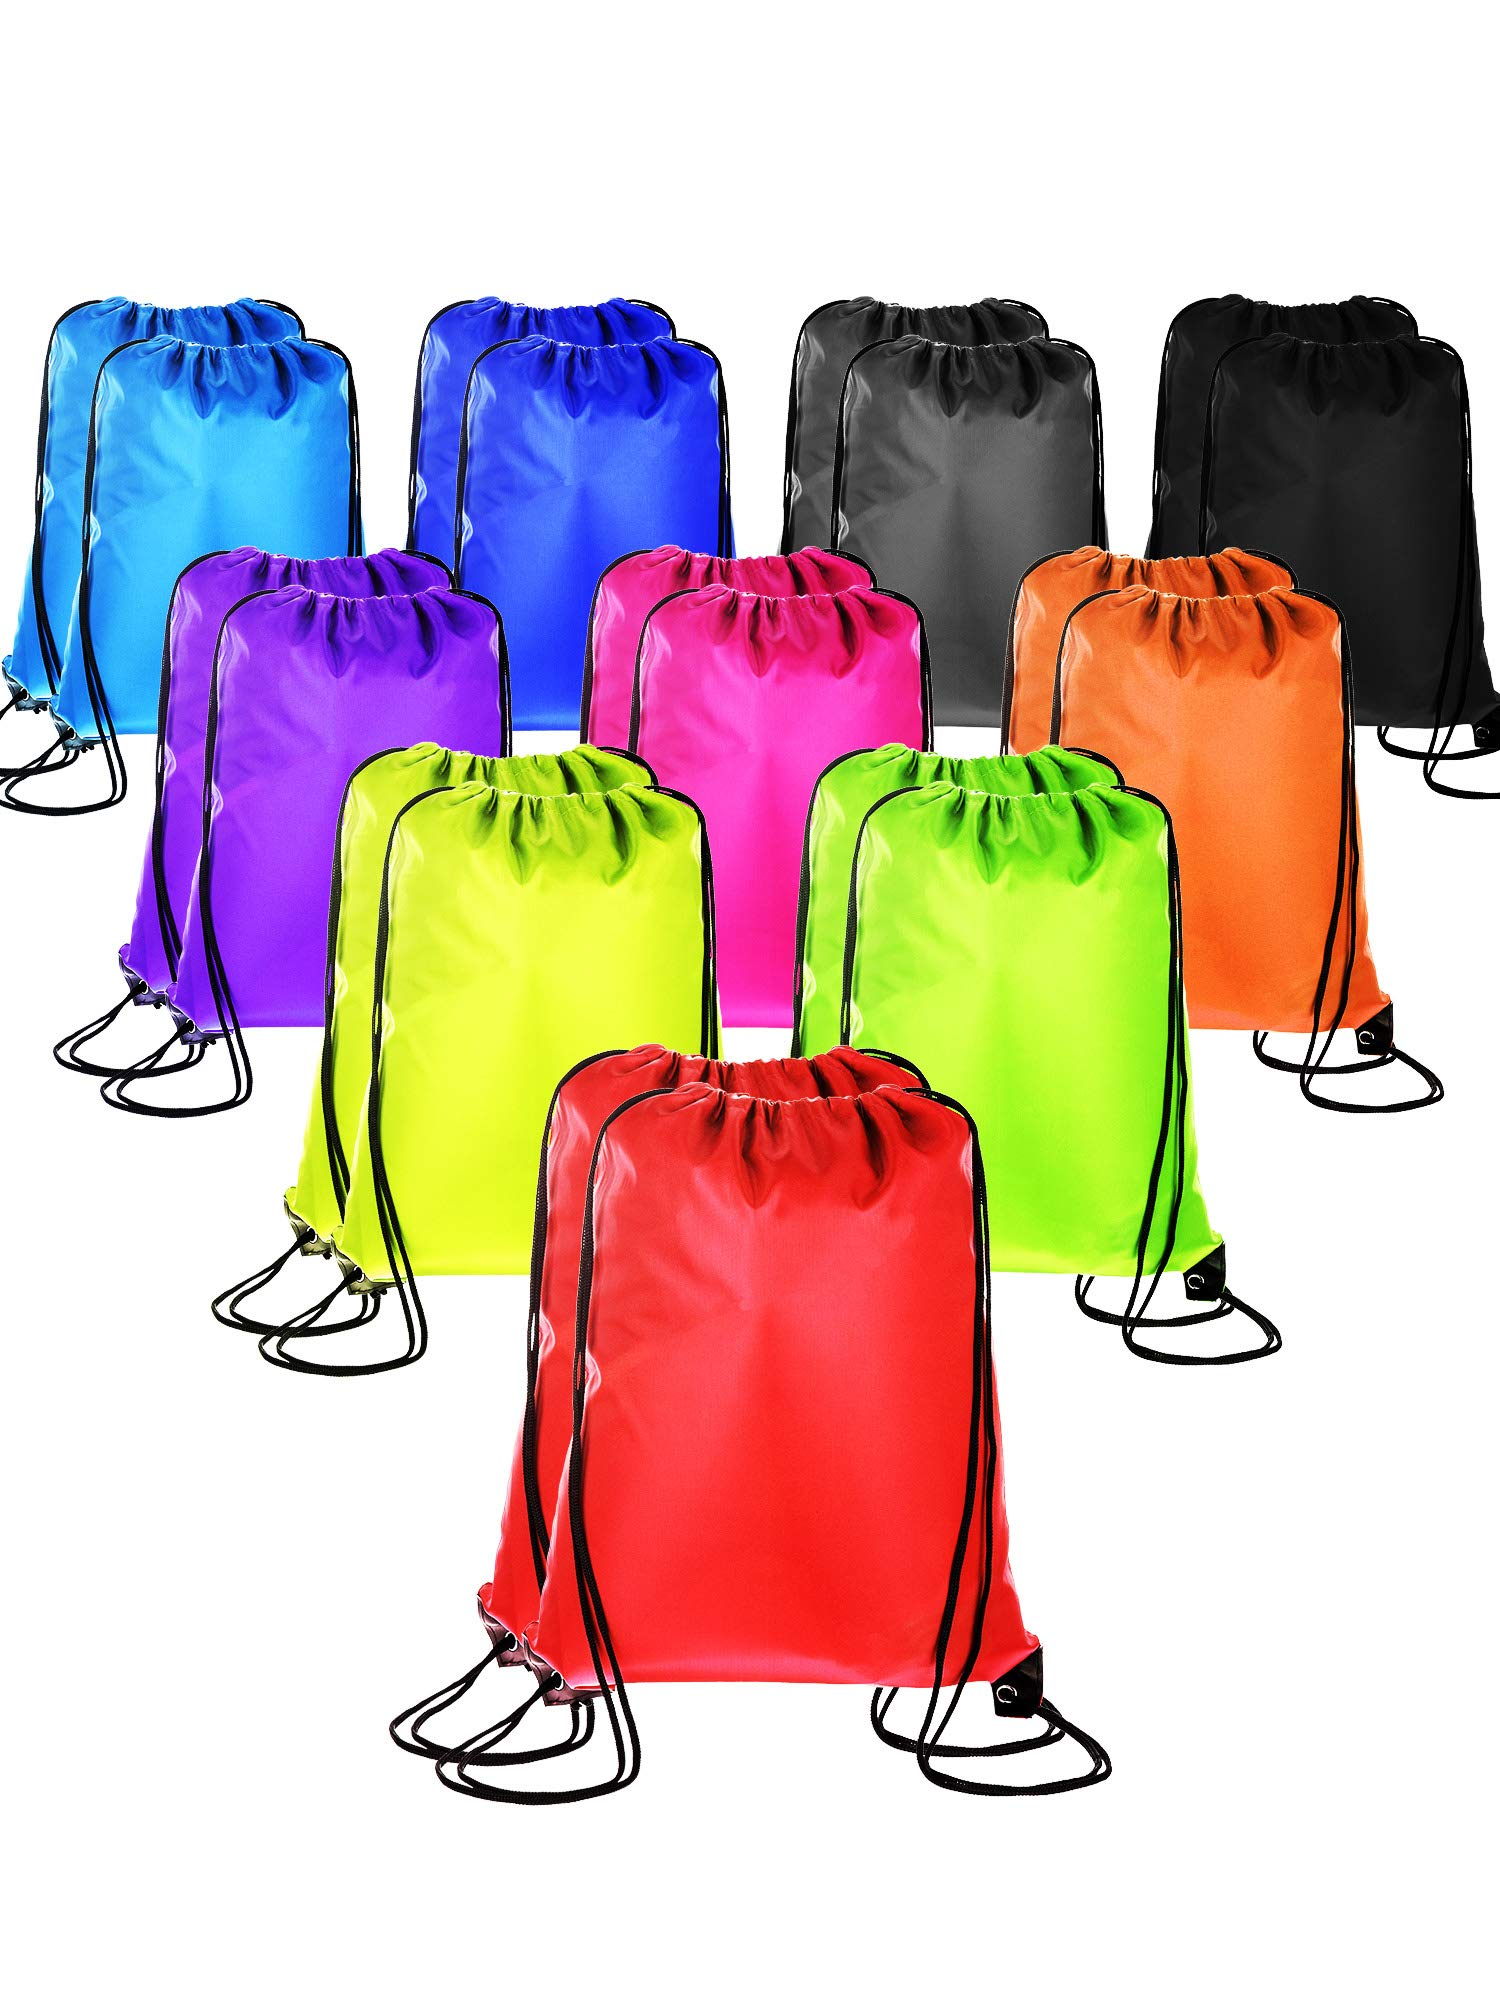 20 Pieces Drawstring Backpack Sport Bags Cinch Tote Bags for Traveling and Storage (10 Colors B, Size 1) by BBTO